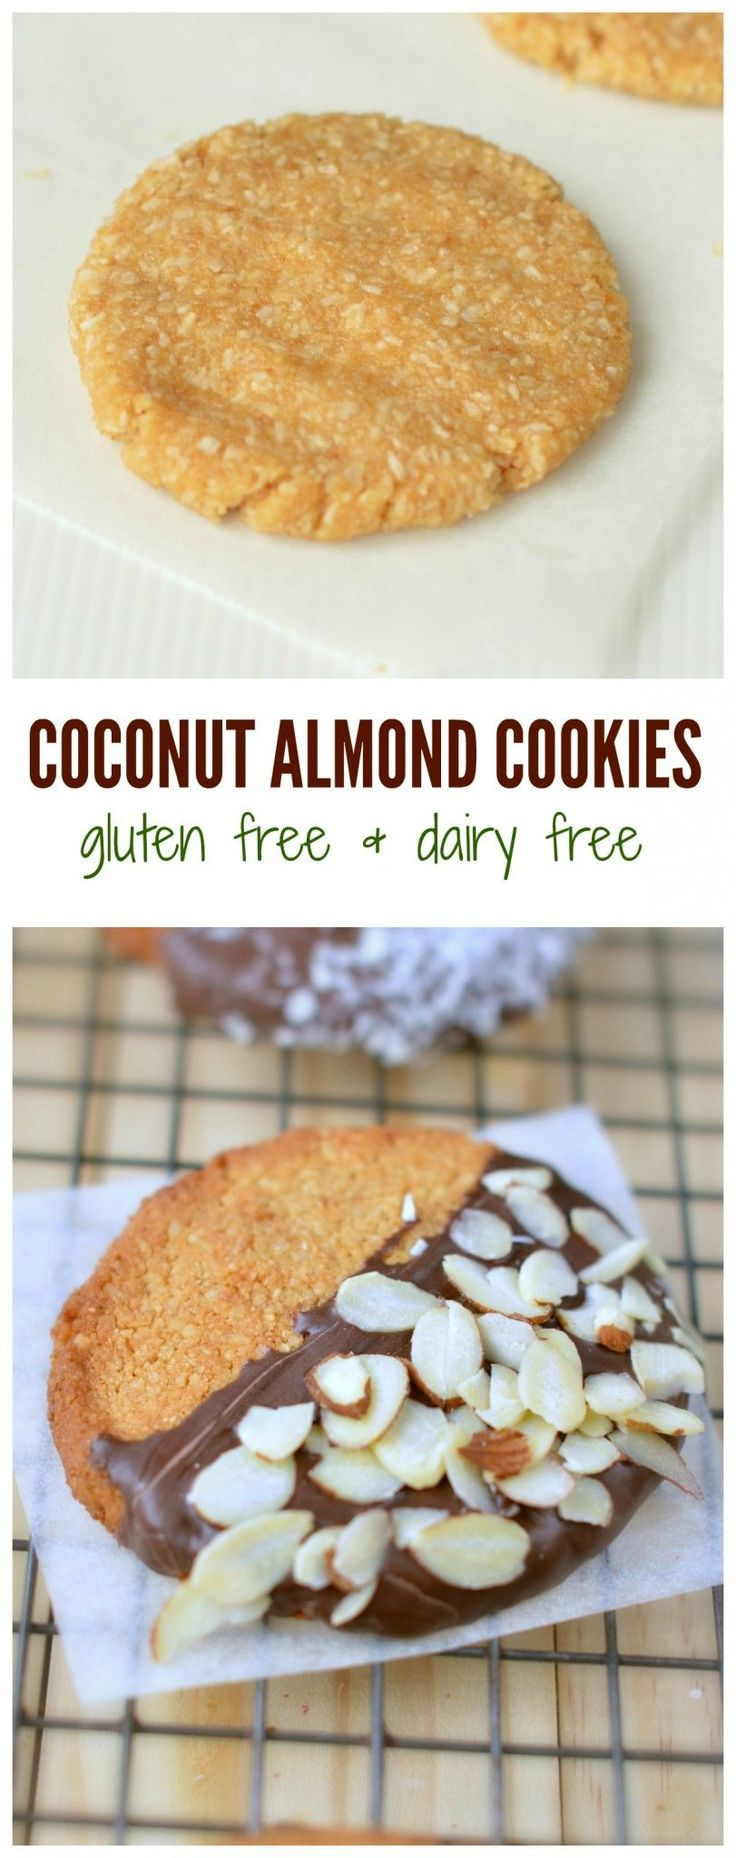 Are you looking for sugar free cookies for Halloween ? Those Coconut Almond Cookies are an healthy gluten free cookie recipe that kids love.